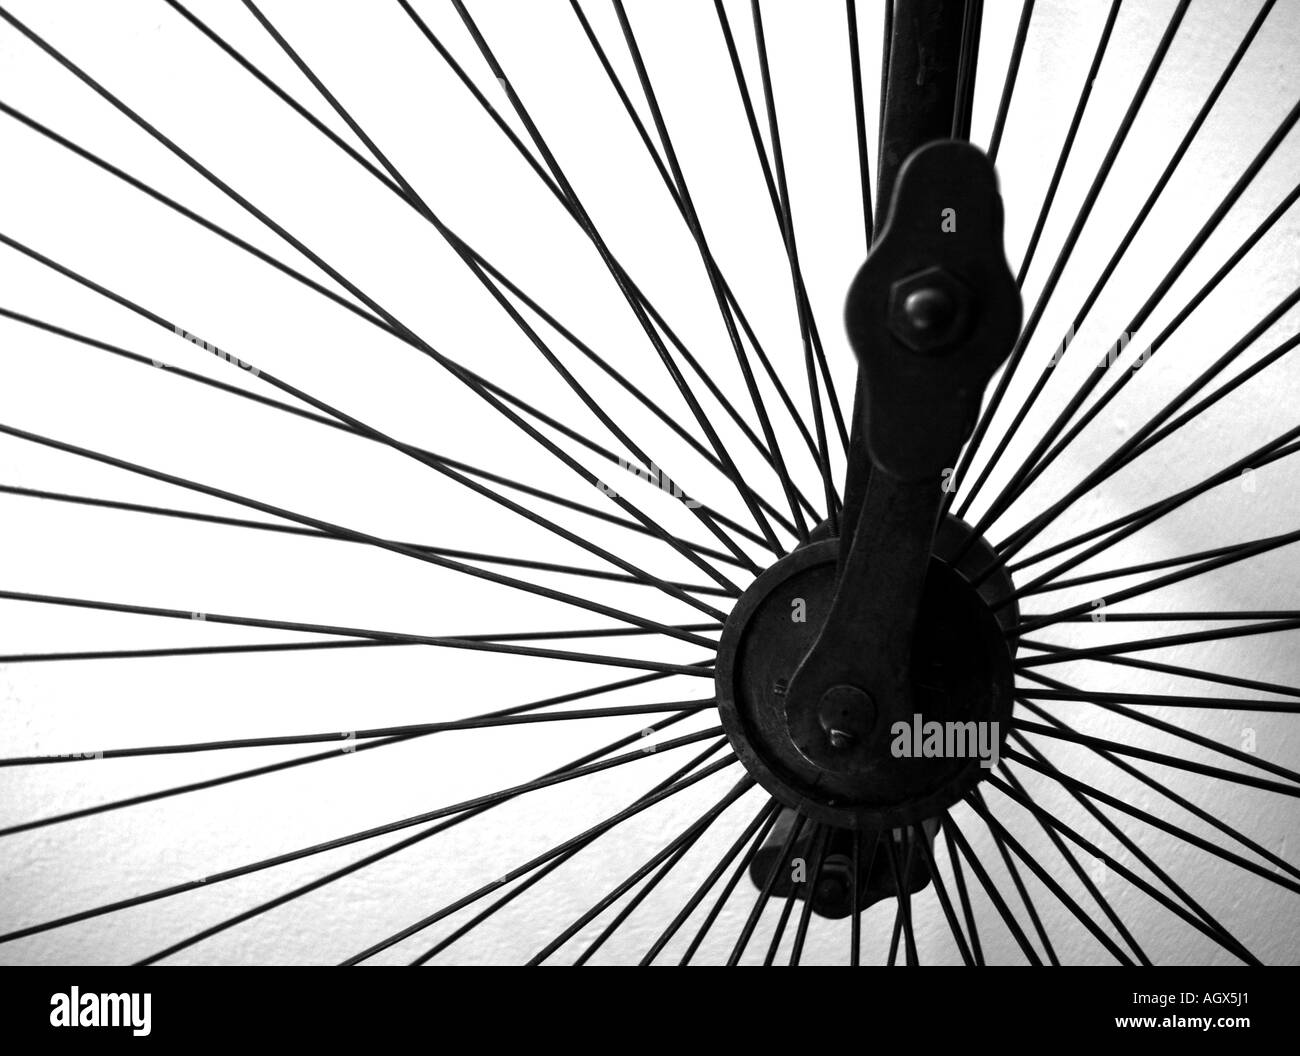 An abstract black and white photo of a wheel penny farthing stock image